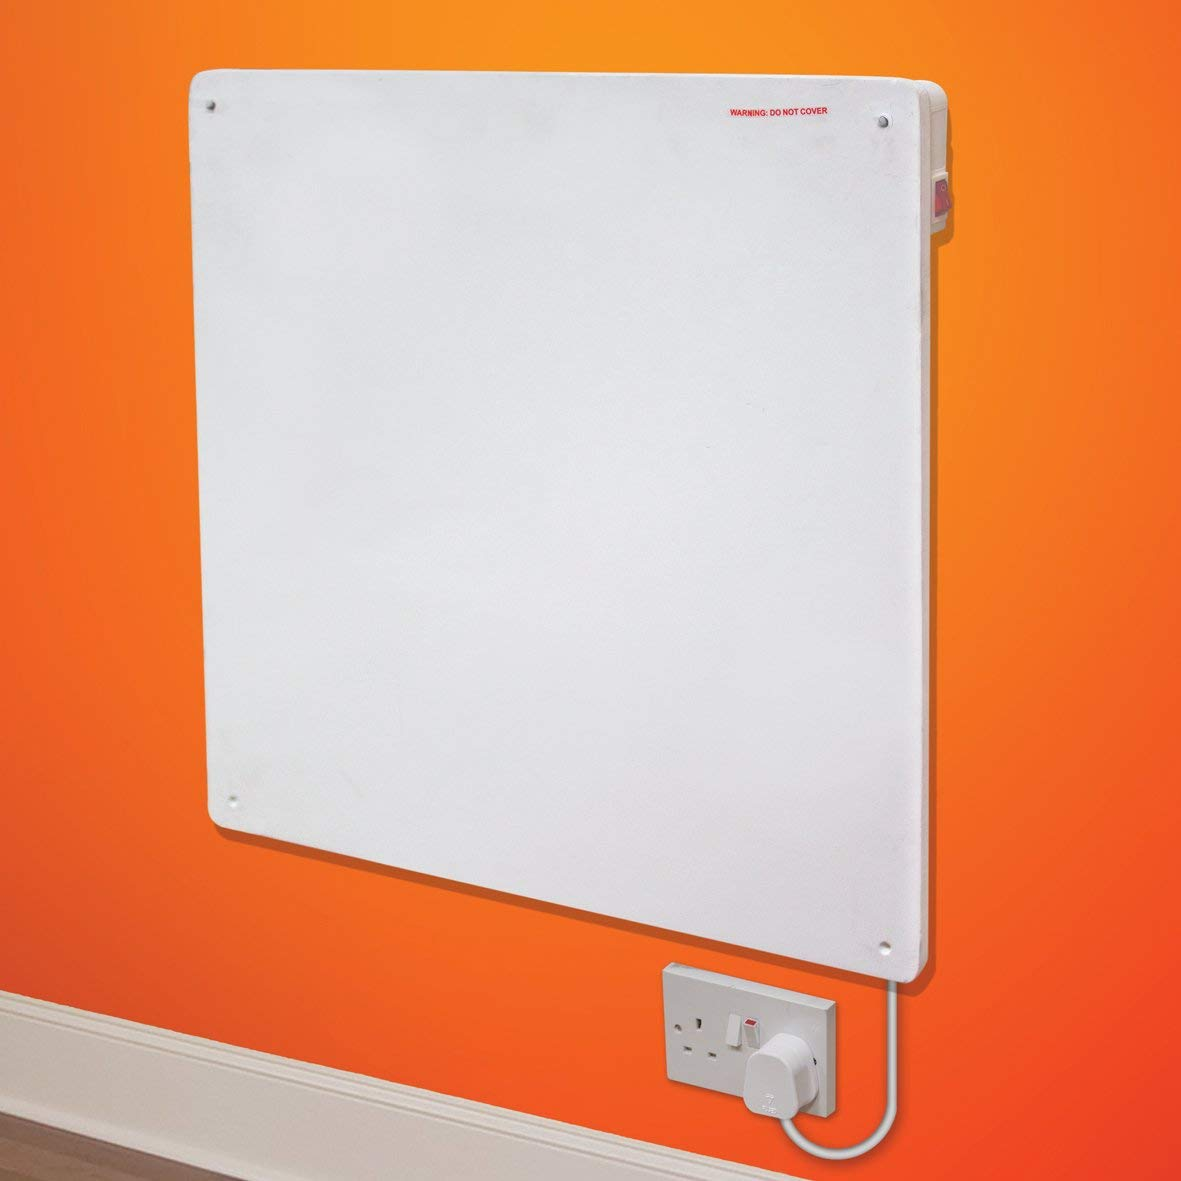 425w Slimline Wall Mounted Ceramic Panel Heater Low Energy